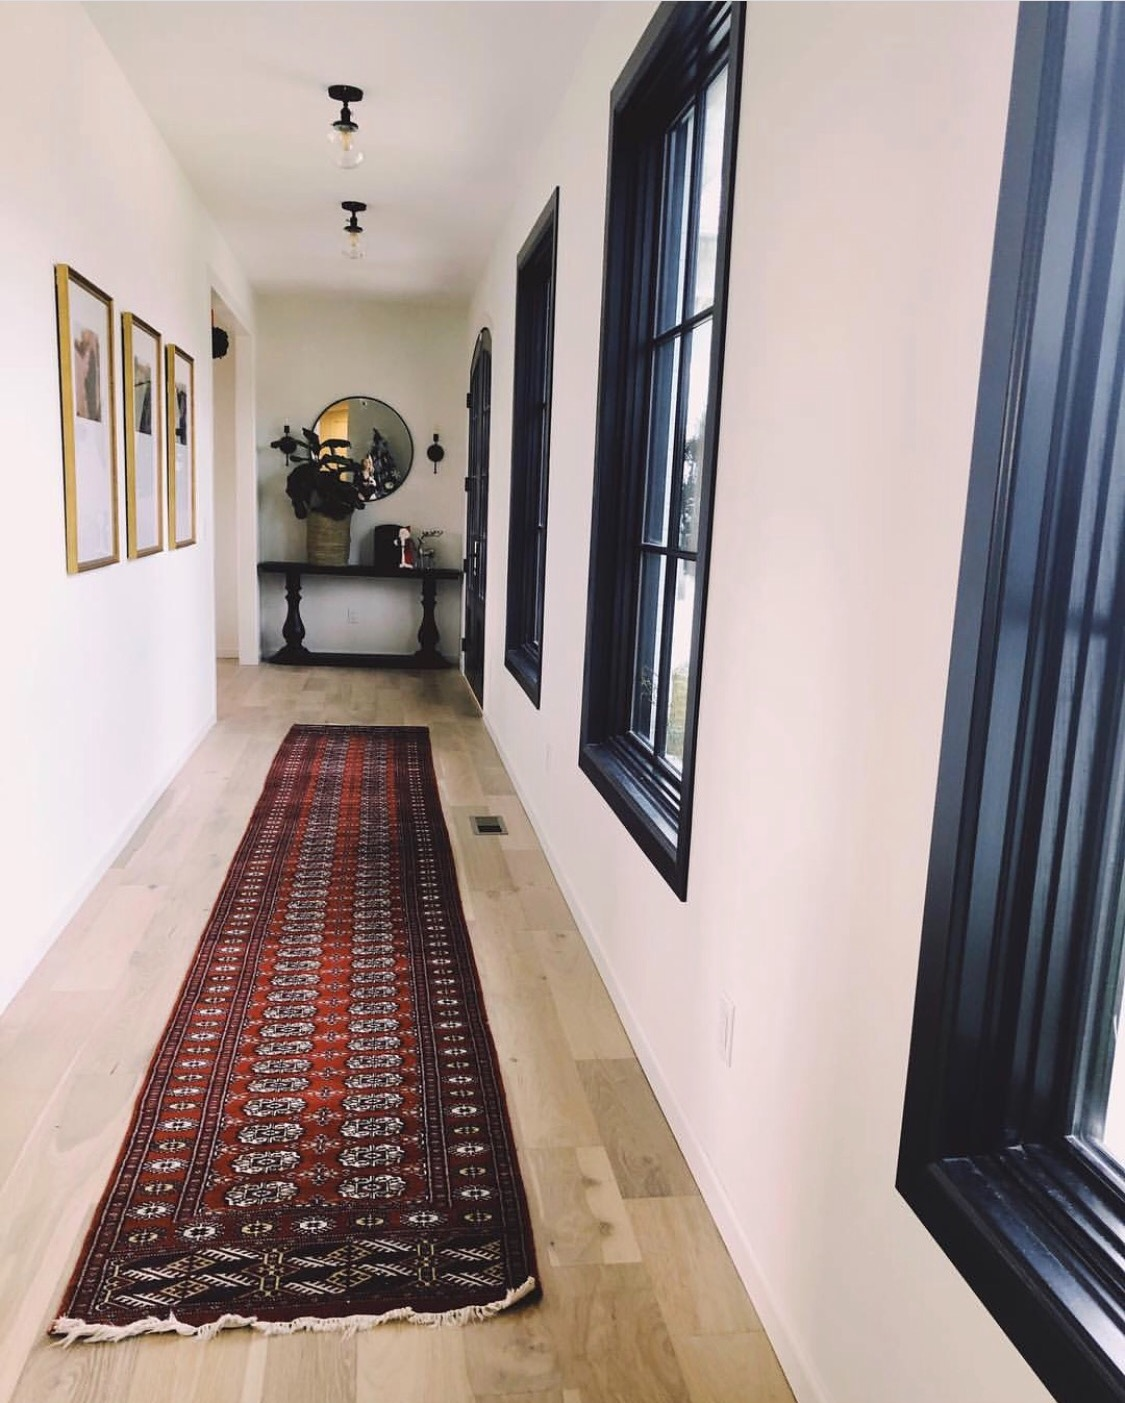 Hallway with Rug and Windows